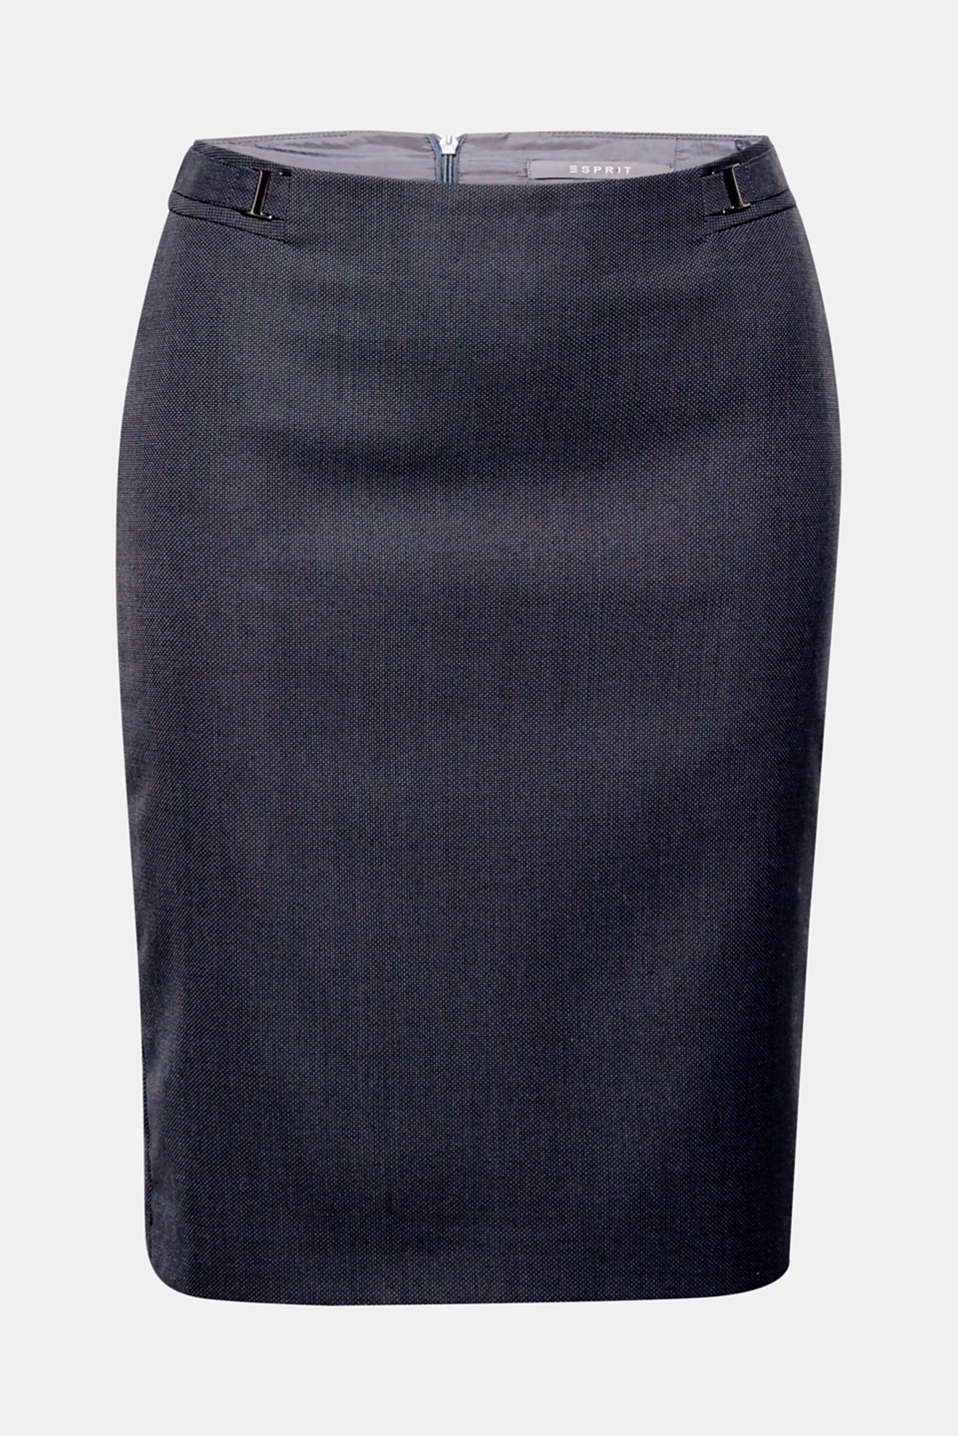 Stretch pencil skirt made of classic blended poly/viscose (fabric) in a fine two-tone look